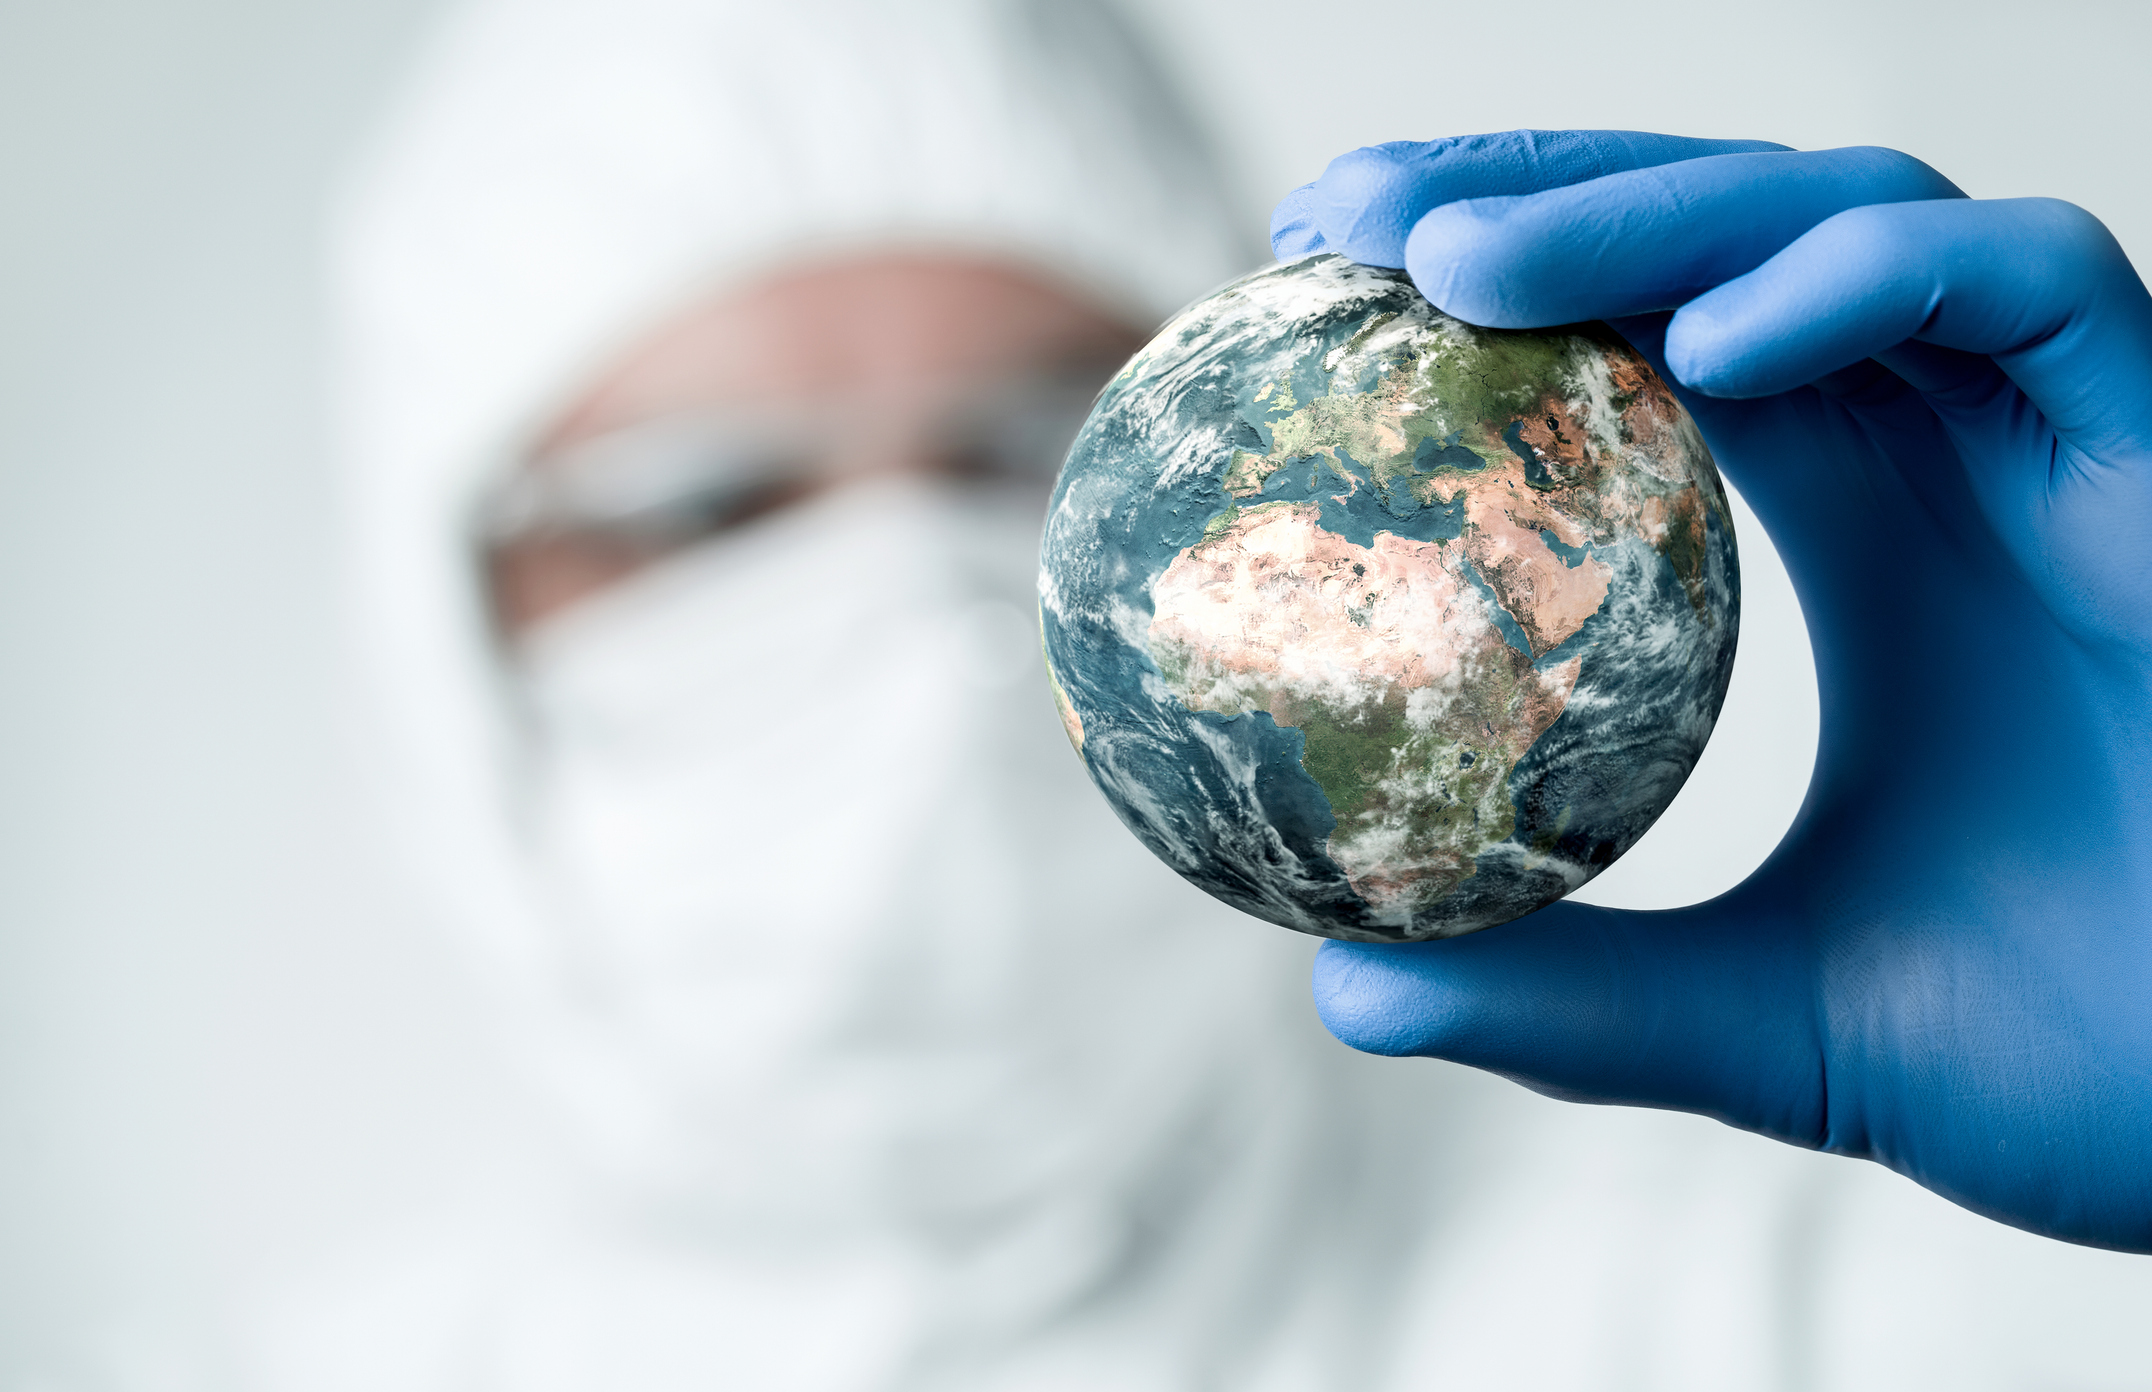 Earth and the environment in the face of pandemic. Image credit: iStock